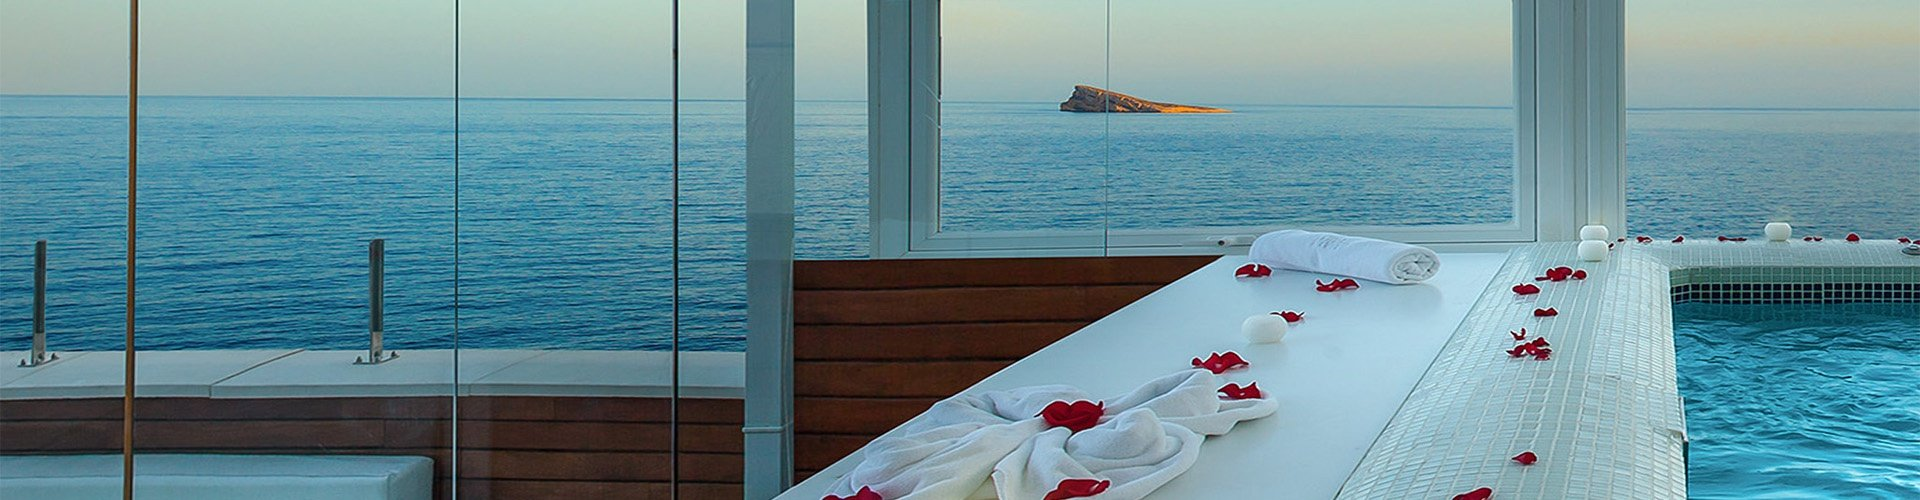 Villa Venecia Boutique - Benidorm - Unforgettable getaways